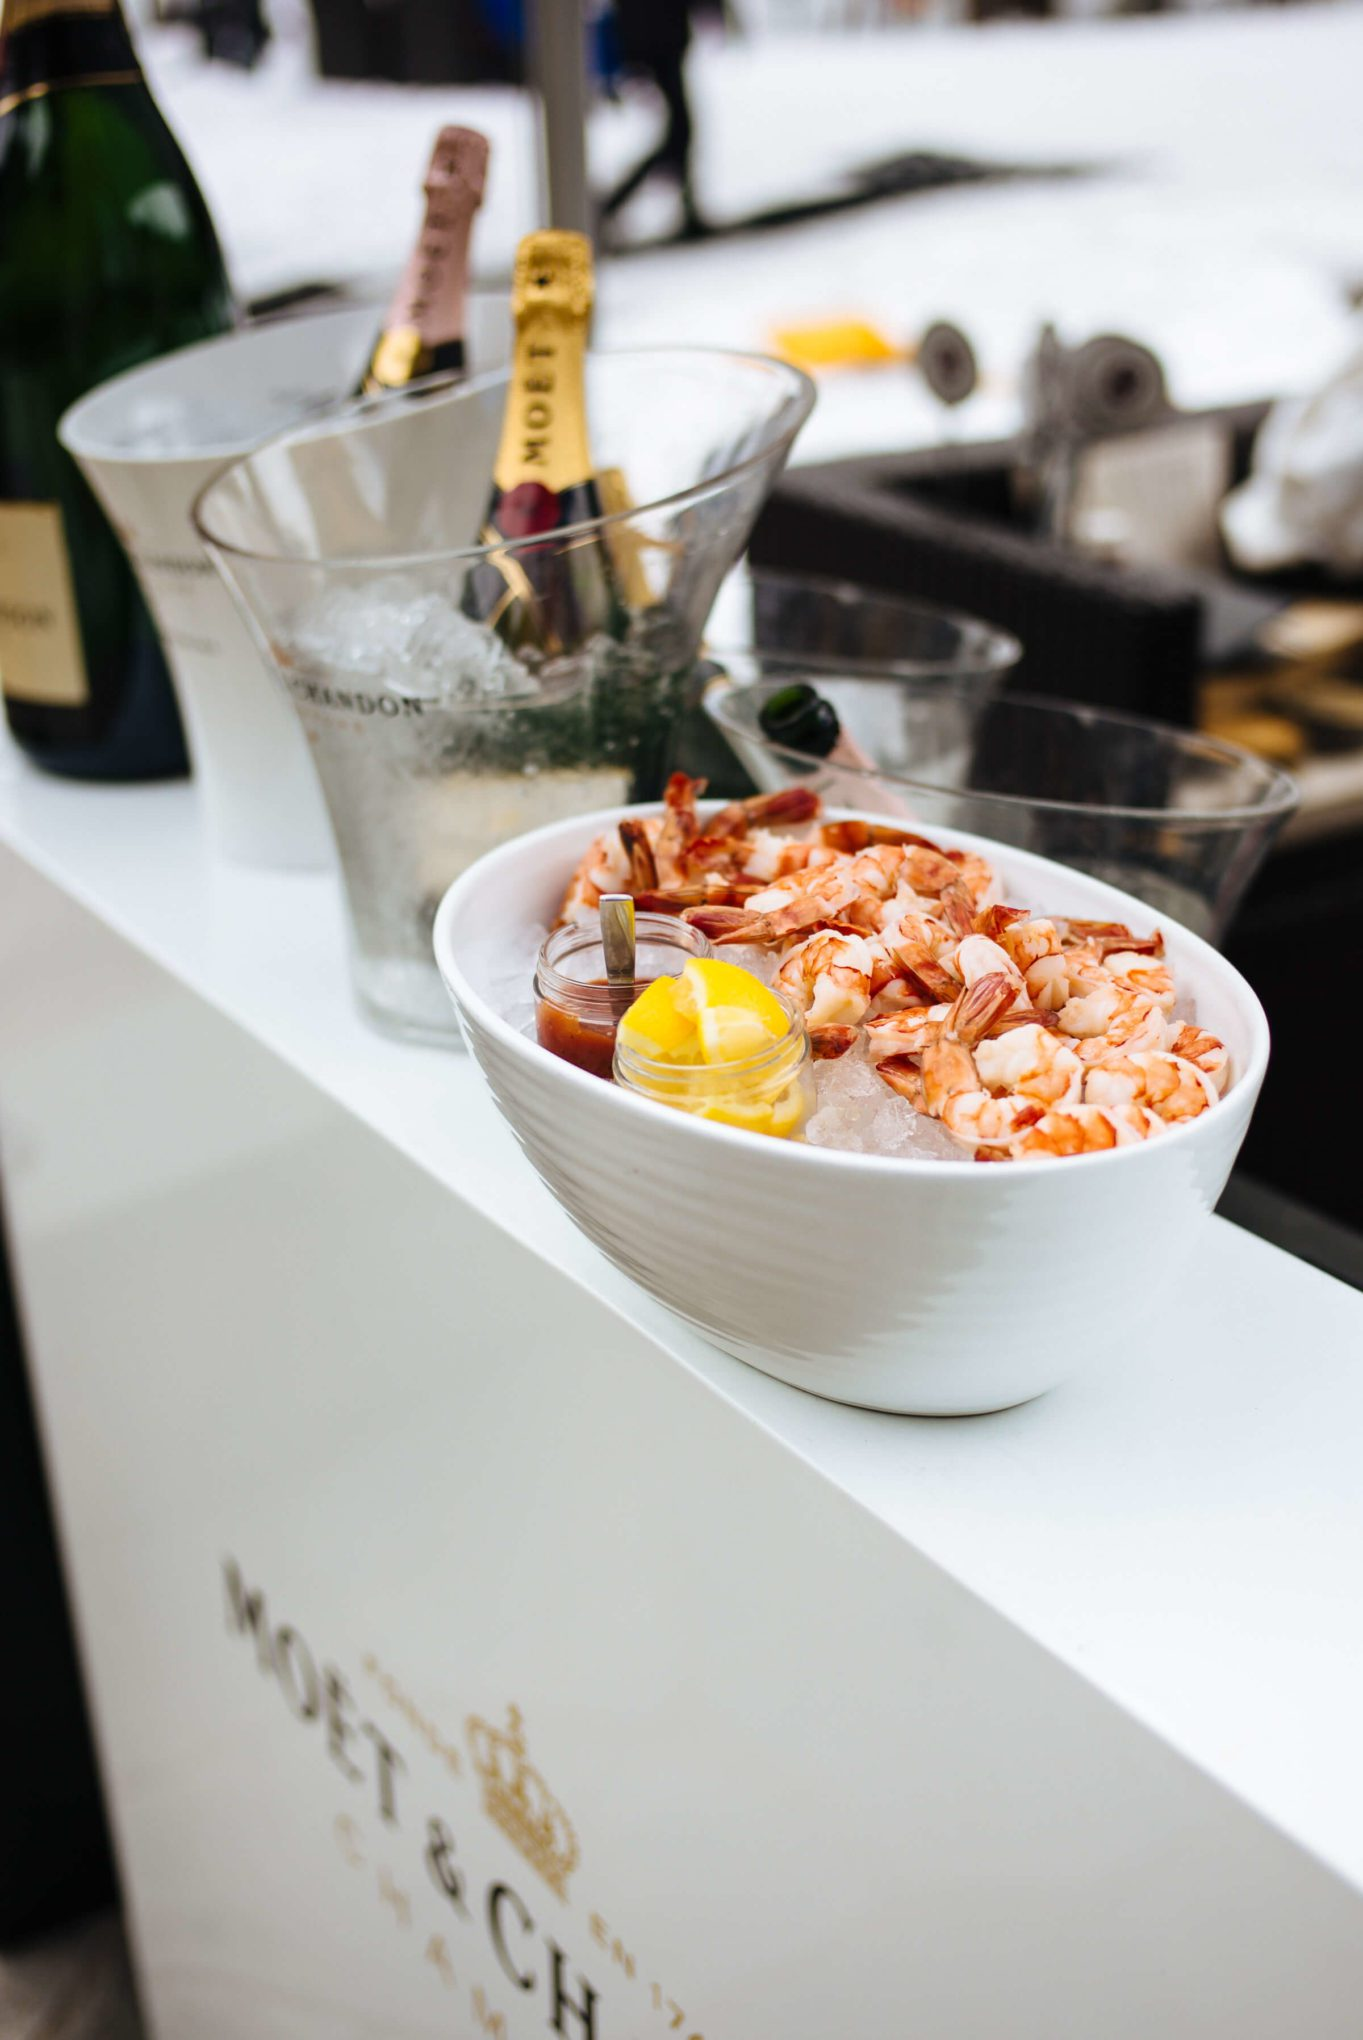 The Ritz-Carlton Lake Tahoe Apres Ski treat with shrimp and Moet Chandon by the fire, The Taste Edit